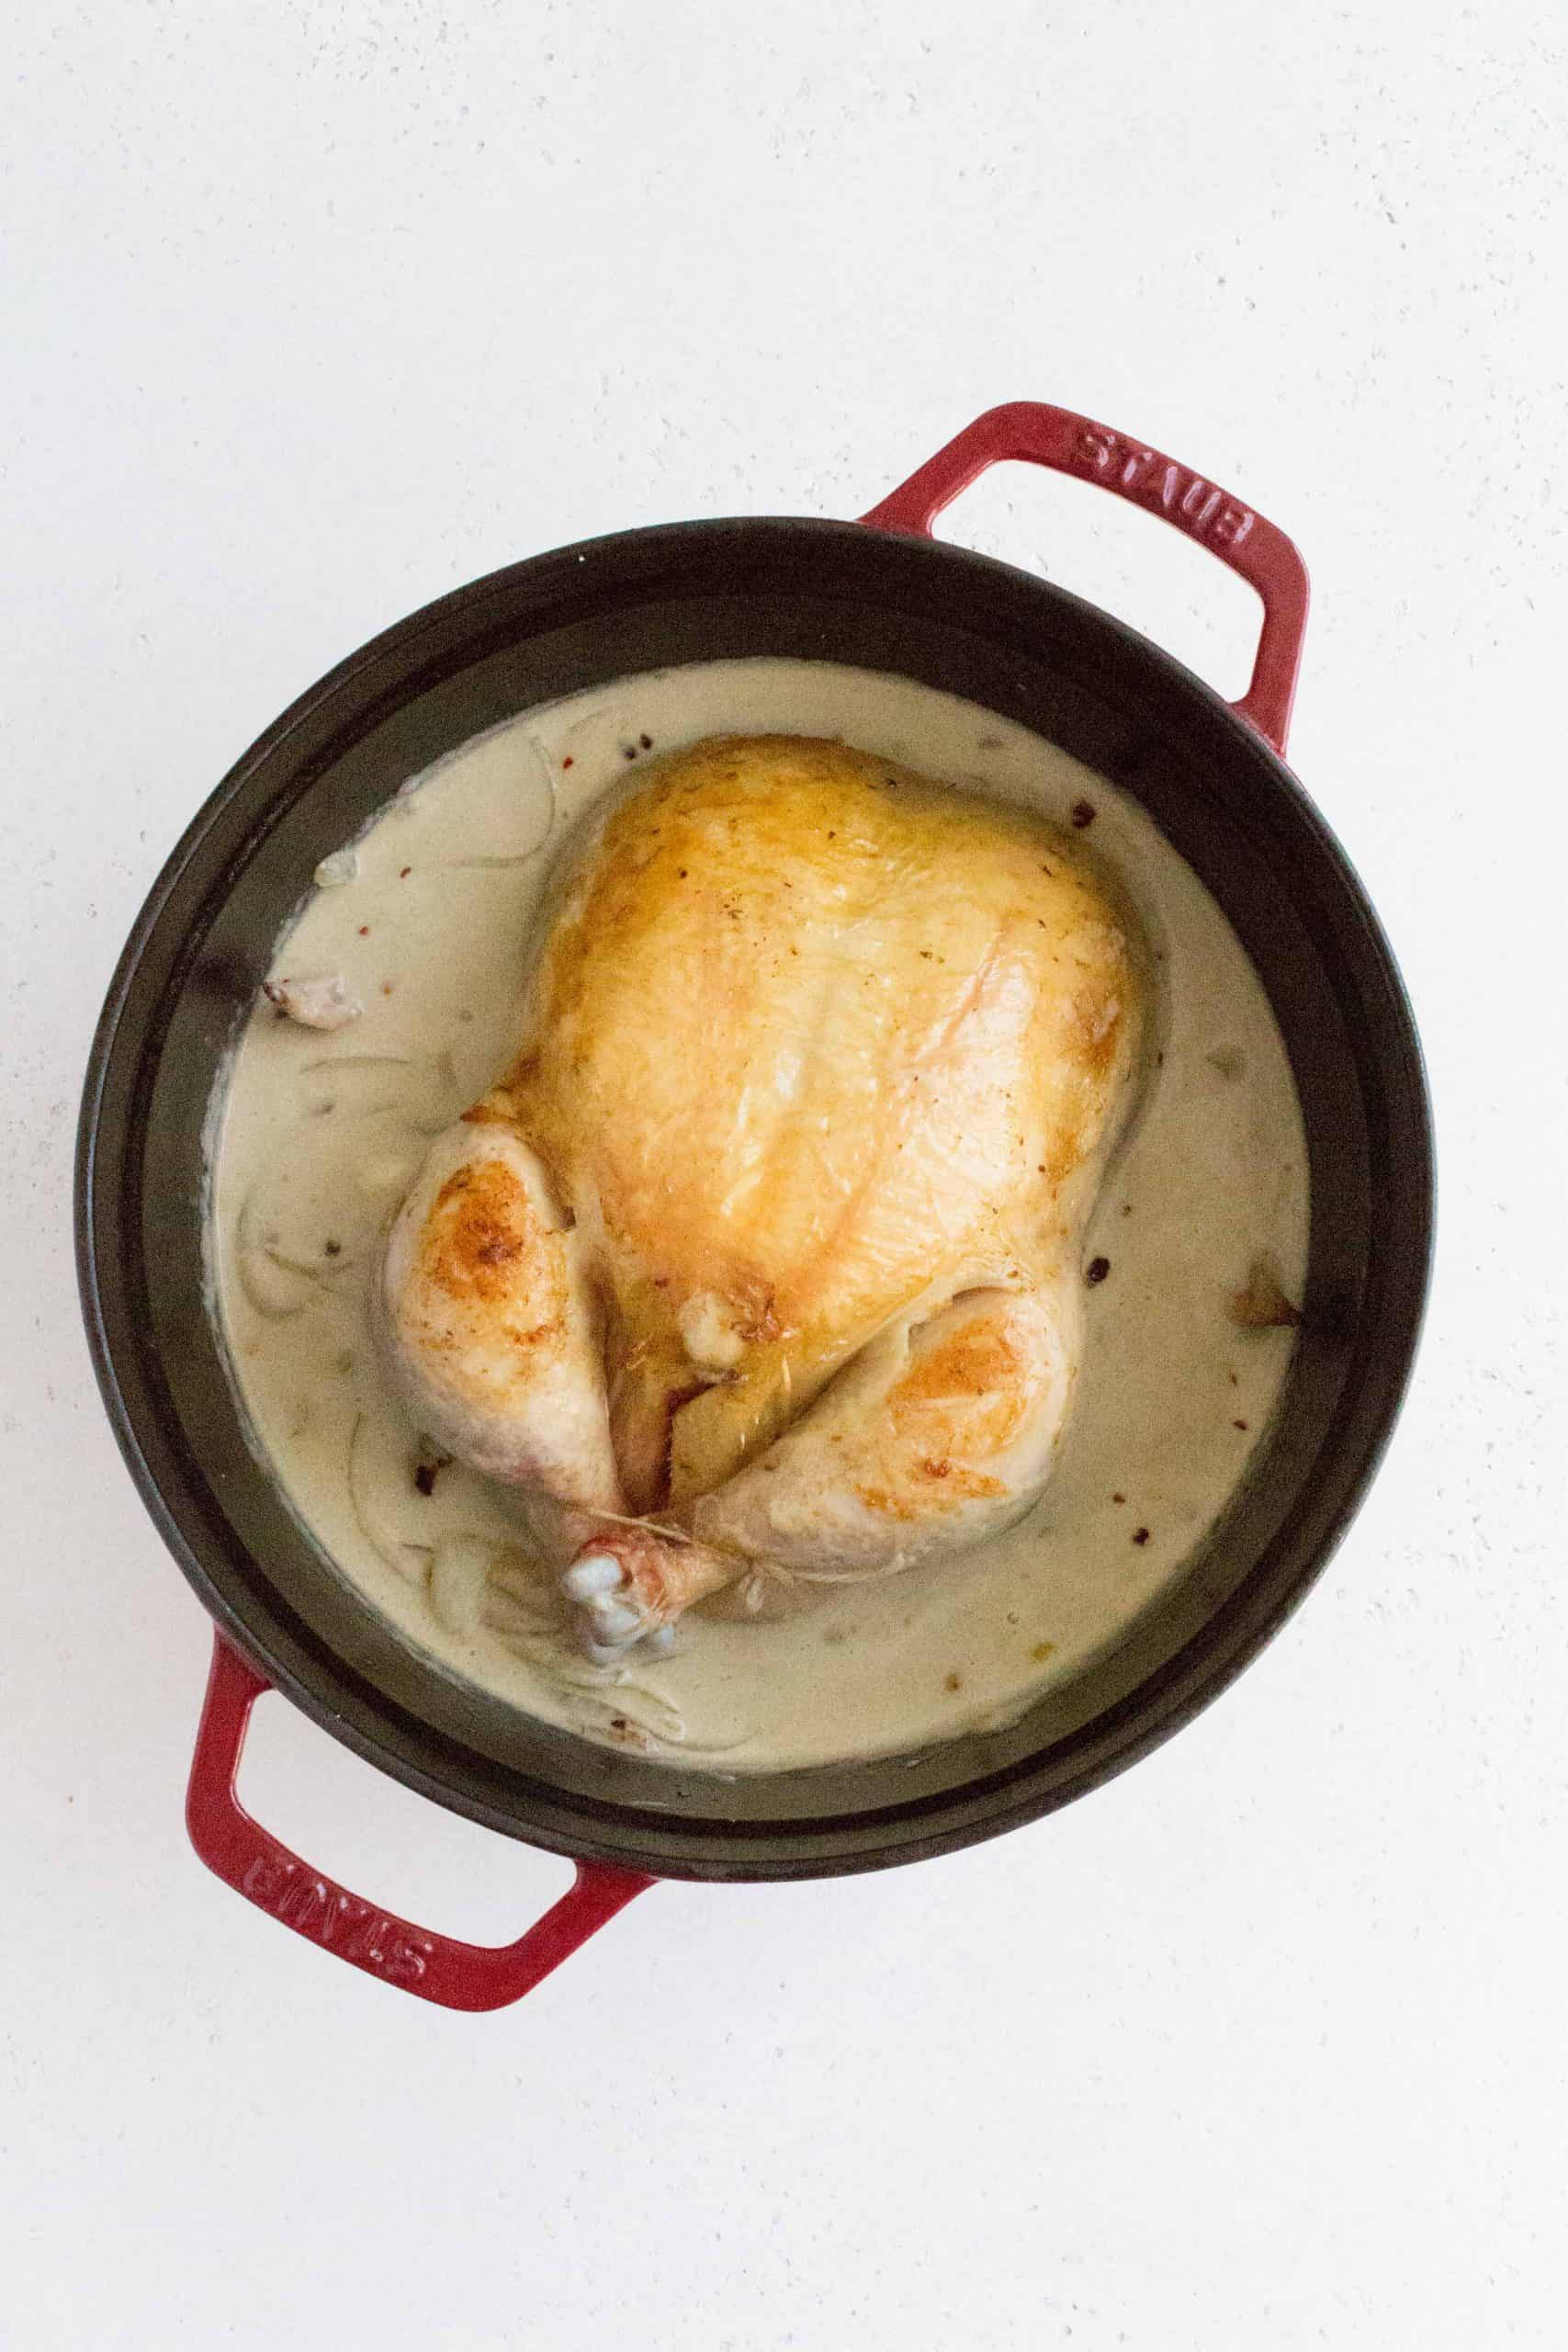 Set aside the chicken and in the pot, add onions, garlic, and crushed red pepper flakes. Sauté until the onions have softened. Add in the coconut milk and green curry paste and bring it to a boil. Add the chicken back in, breast side up, cover, and simmer on medium for 35-40 minutes.